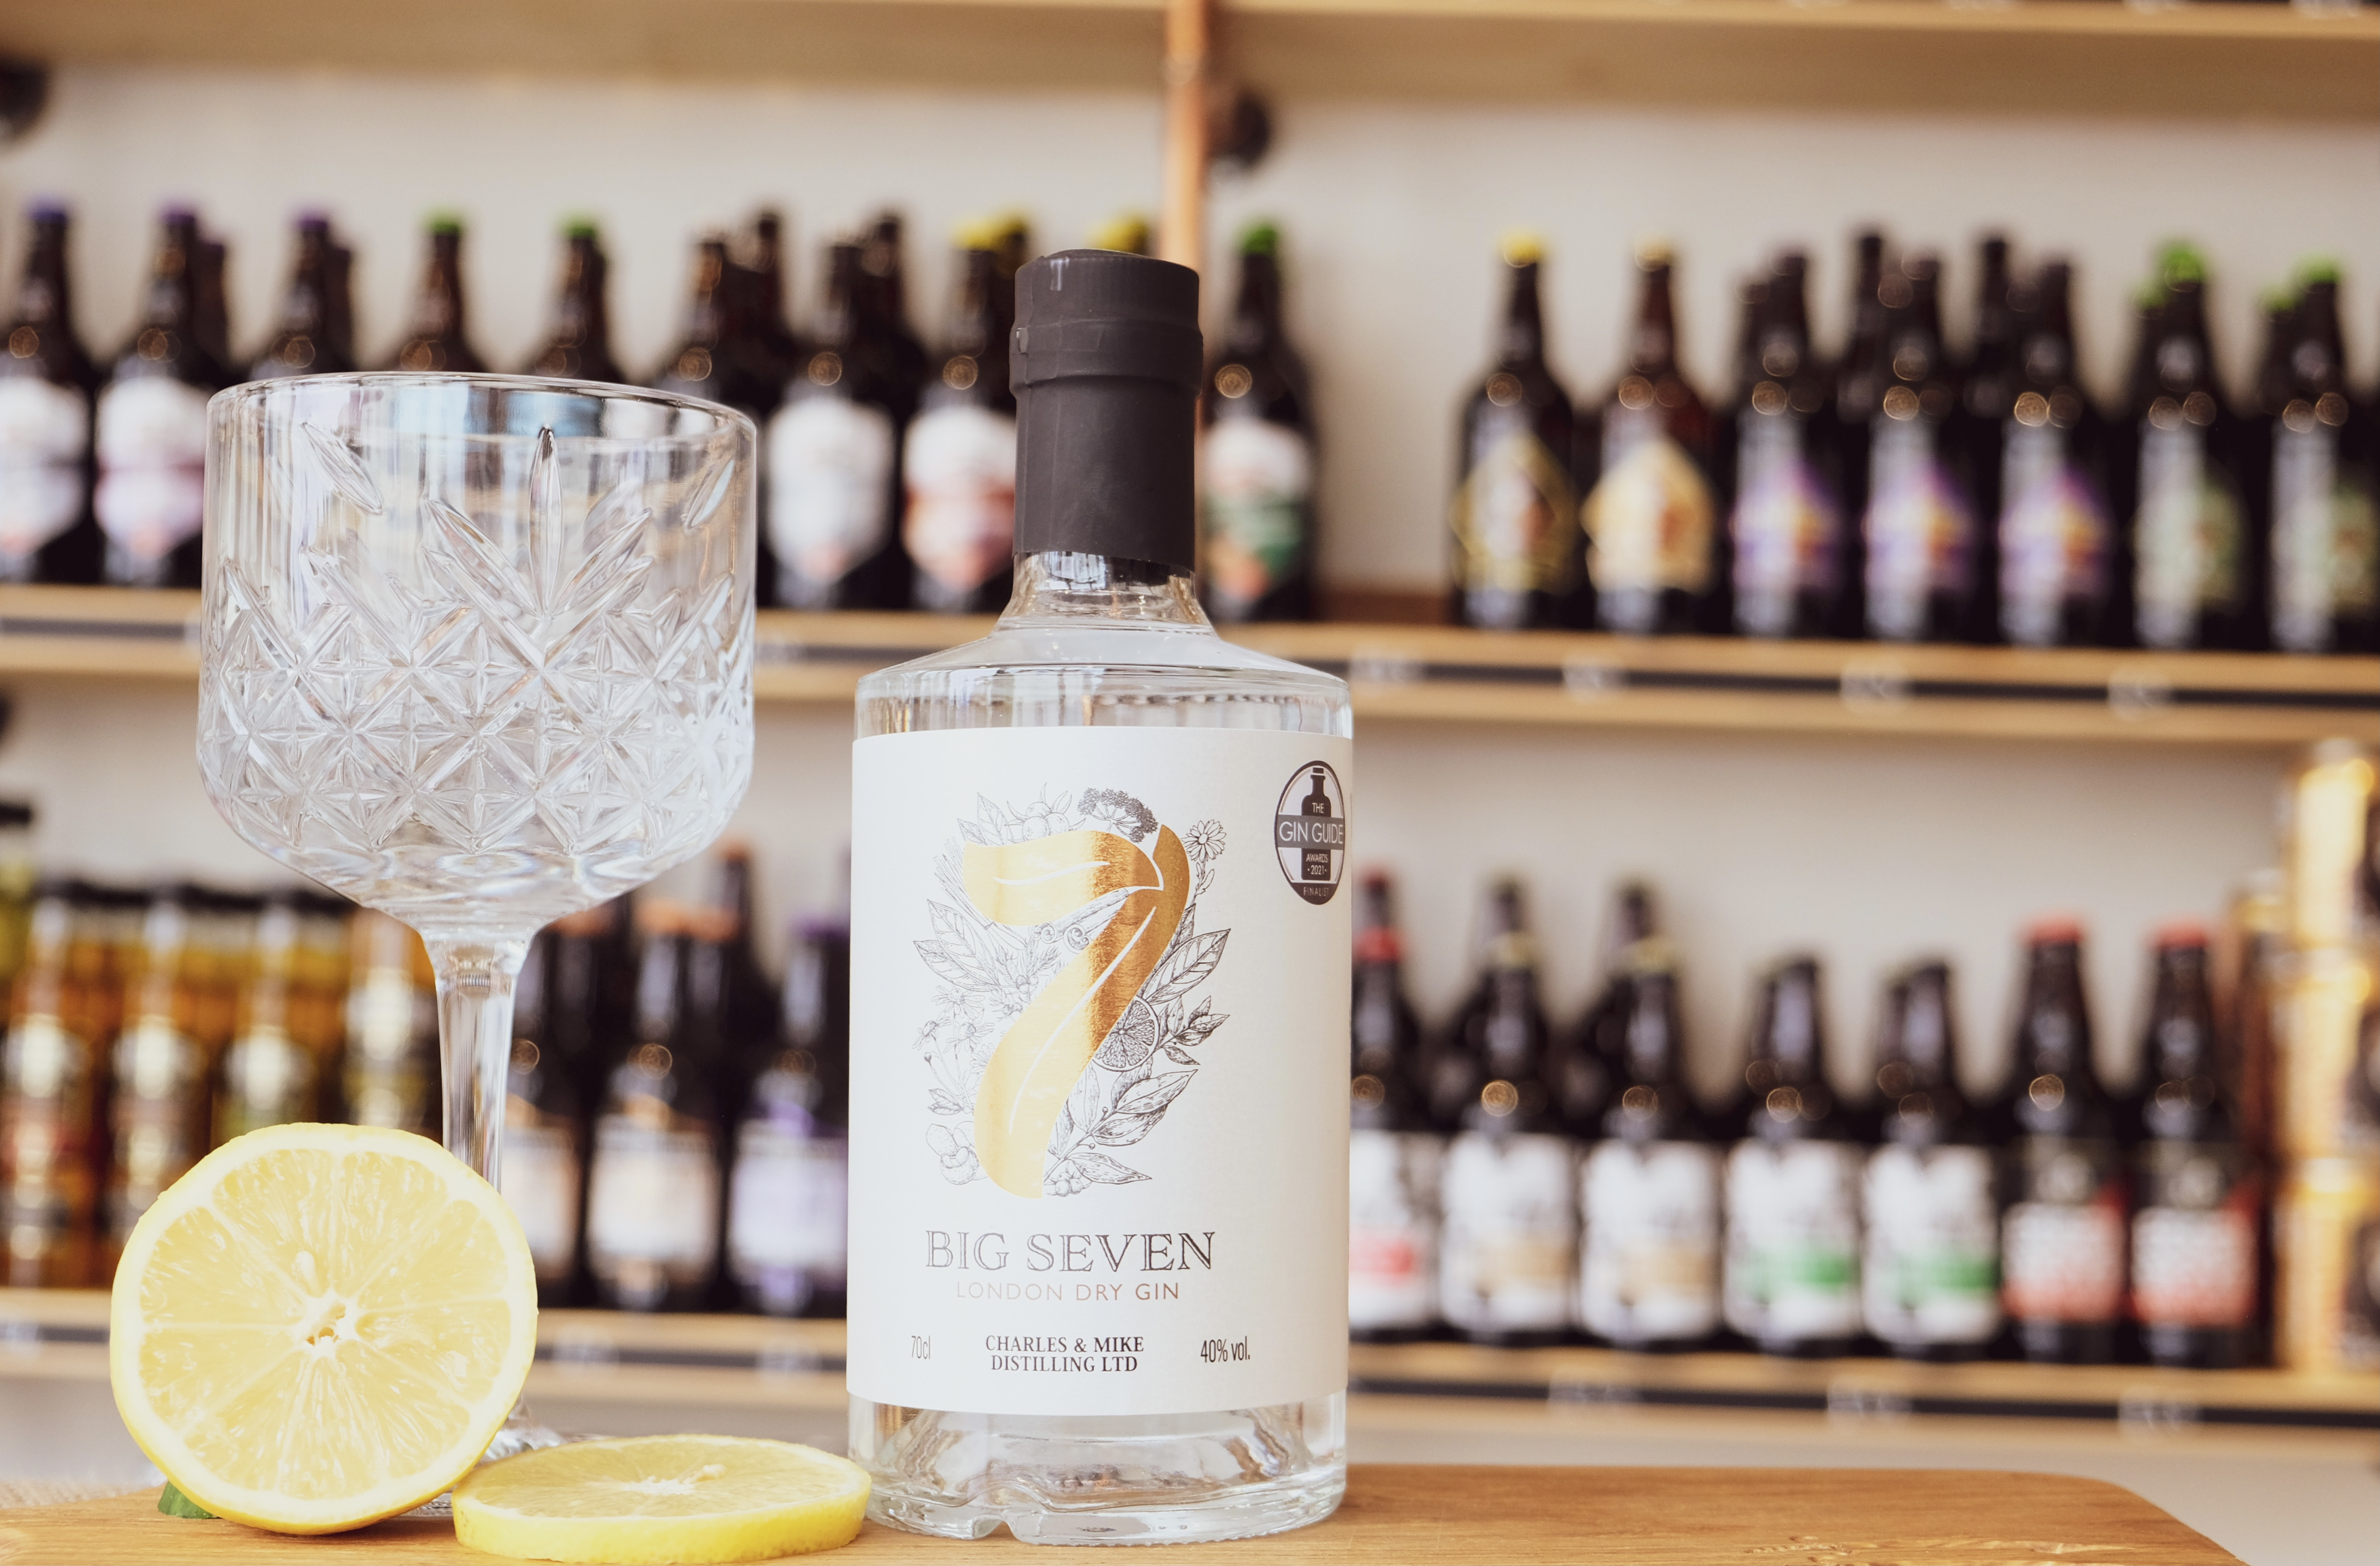 Charles & Mike Distilling Big Seven gin available at Essex Produce Co. in Kelvedon, Essex